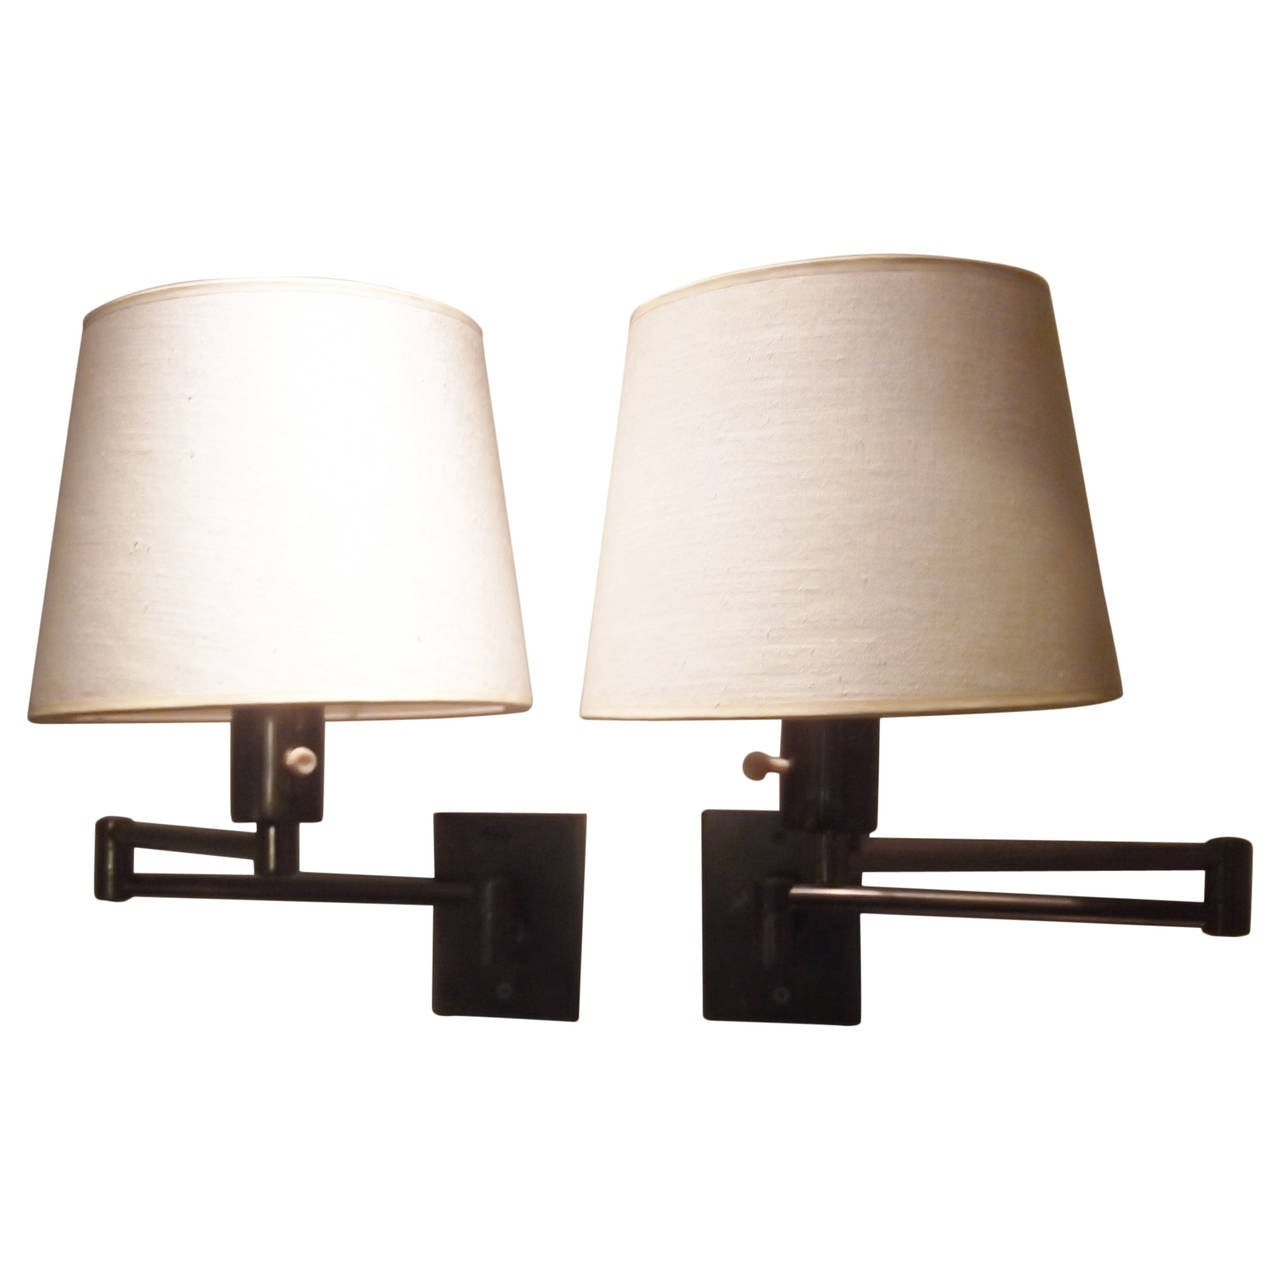 Wall Mounted Extension Lamps : Pair of Brass Mid Century Hansen Swing Arm Wall-Mounted Lamps at 1stdibs